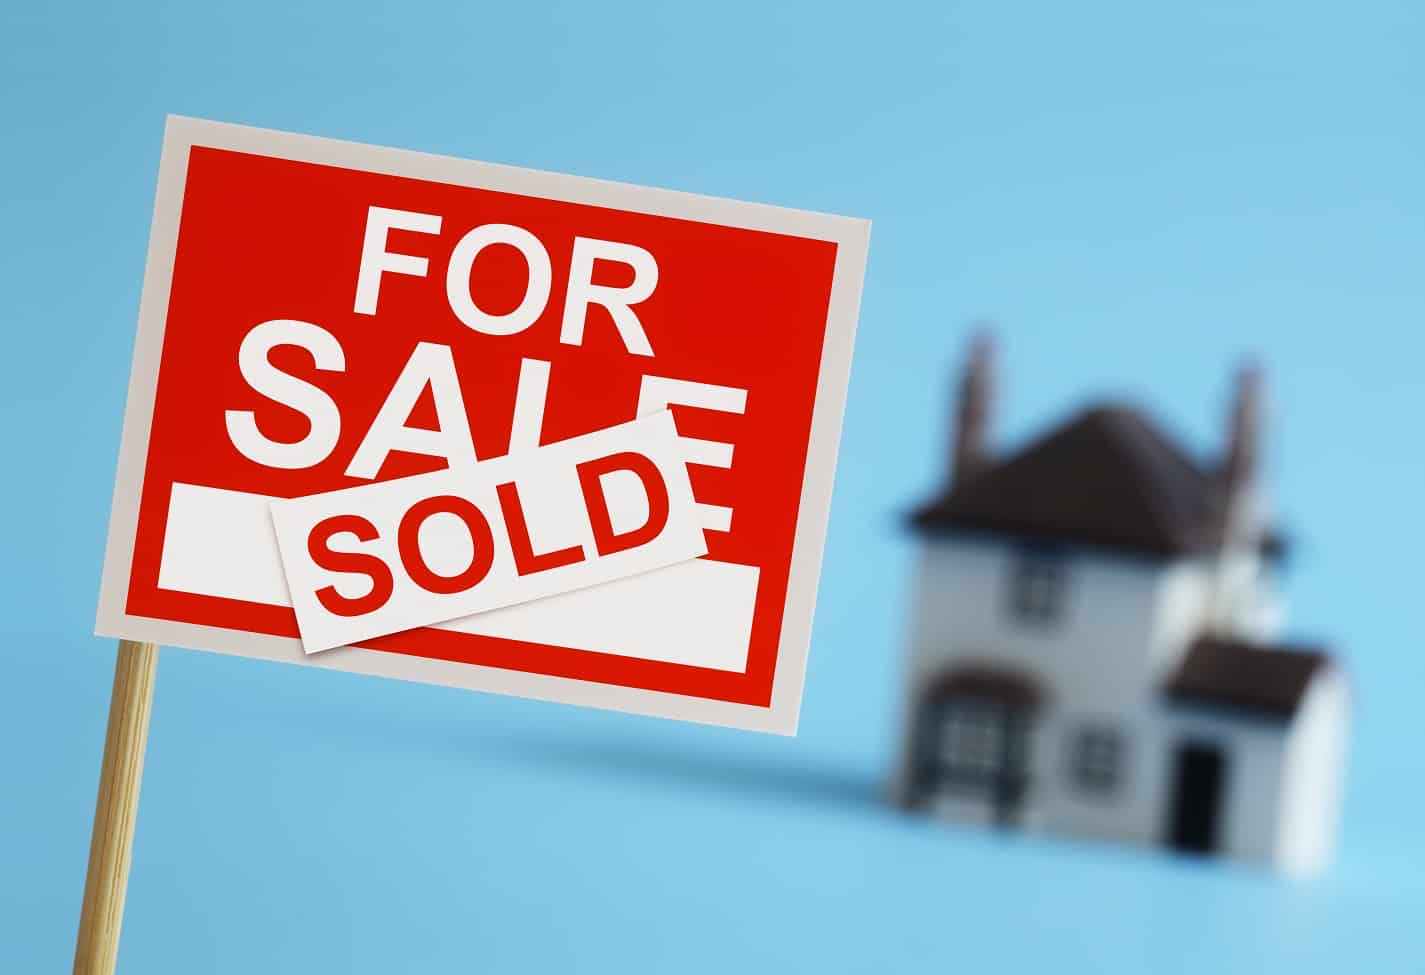 Real estate agent for sale sign